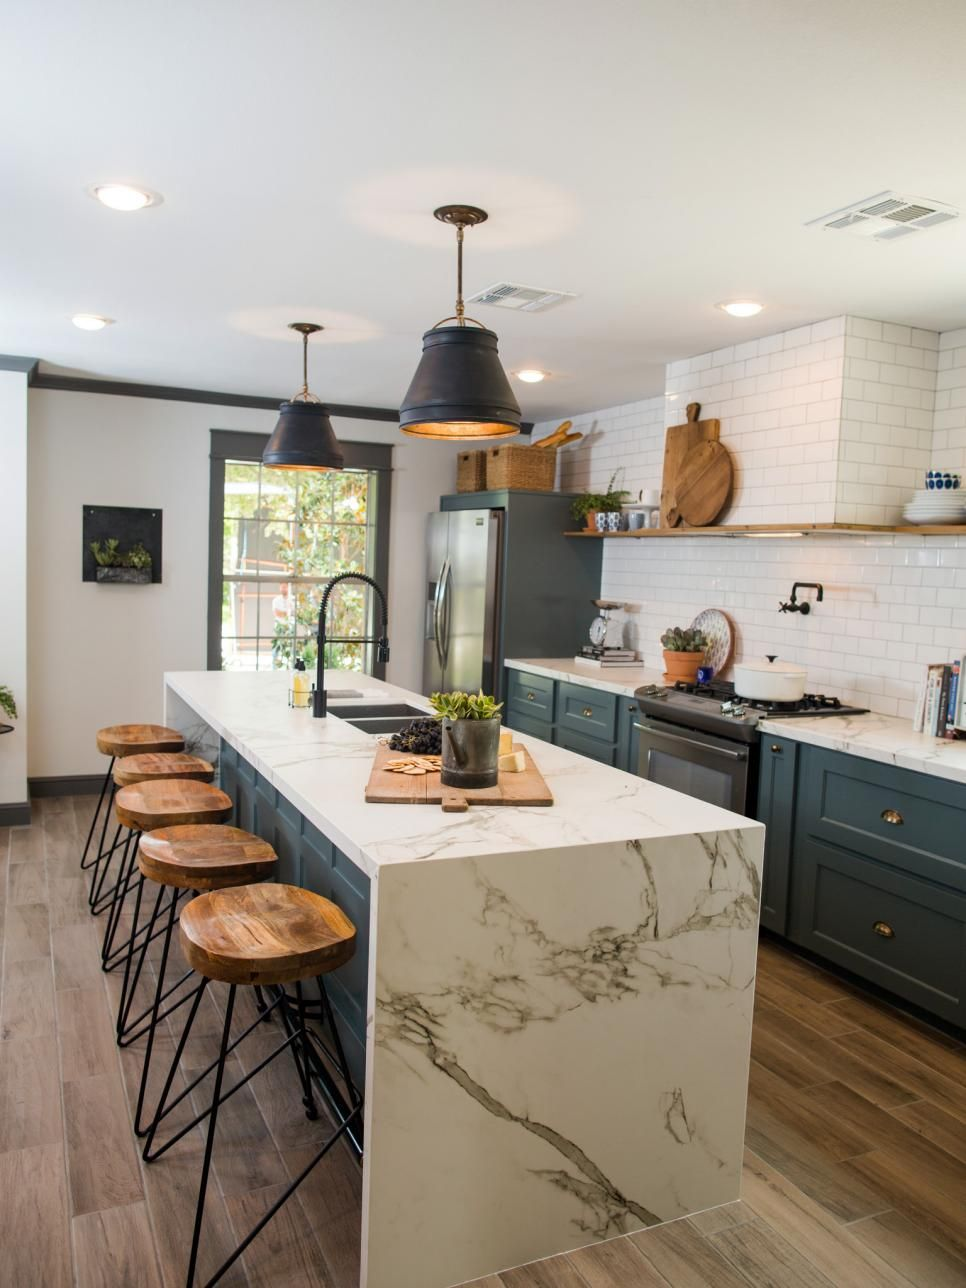 Fixer upper gaines kitchen - Fixer Upper Old World Charm For Newlyweds